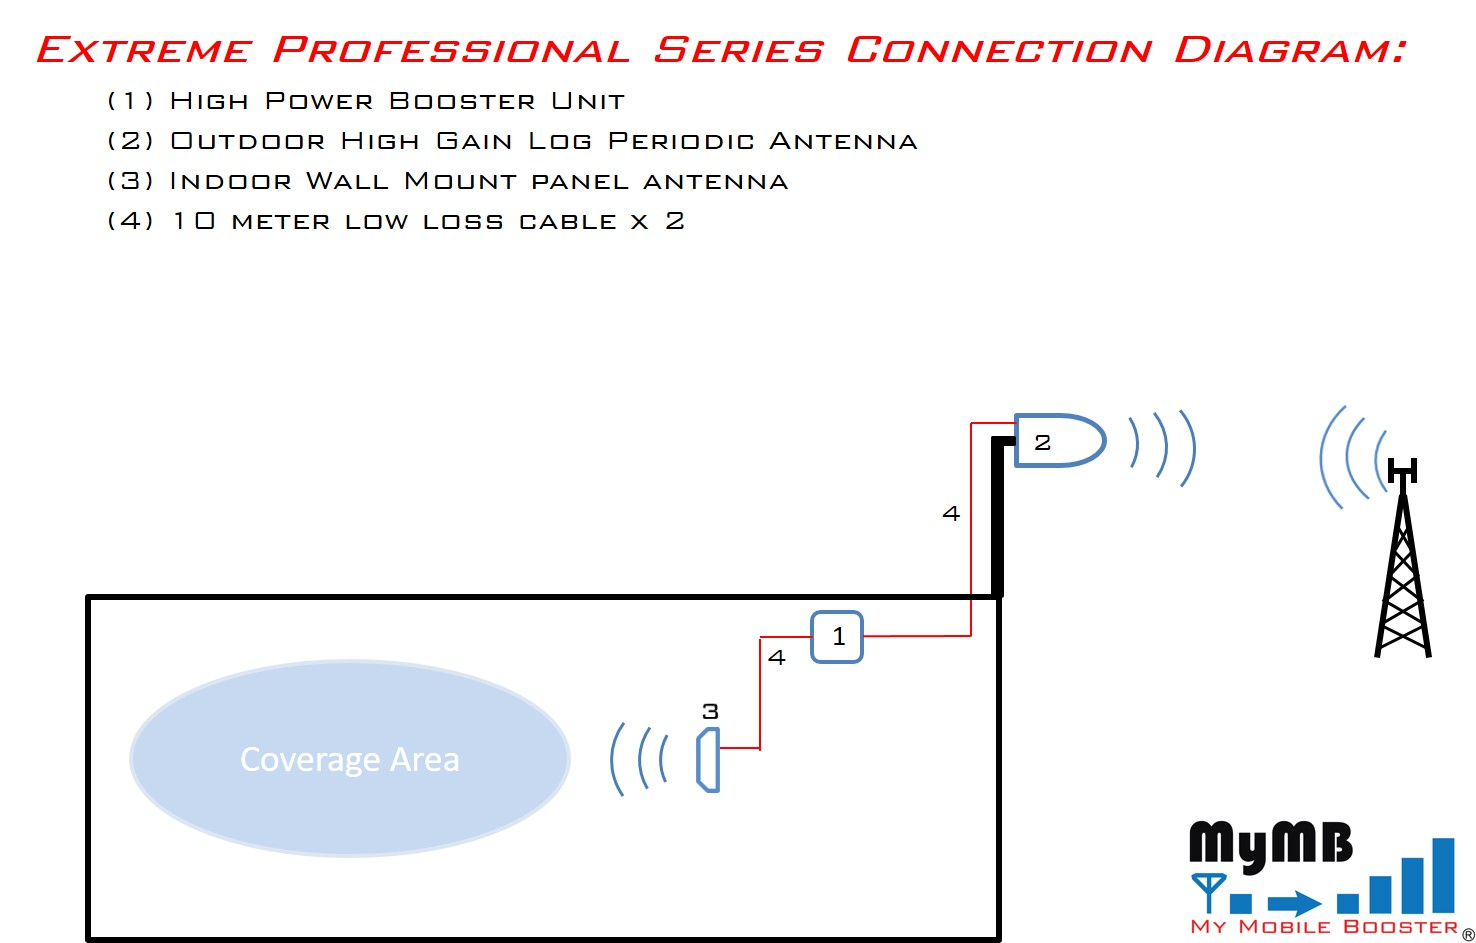 Extreme Professional Series mobile signal booster system Connection